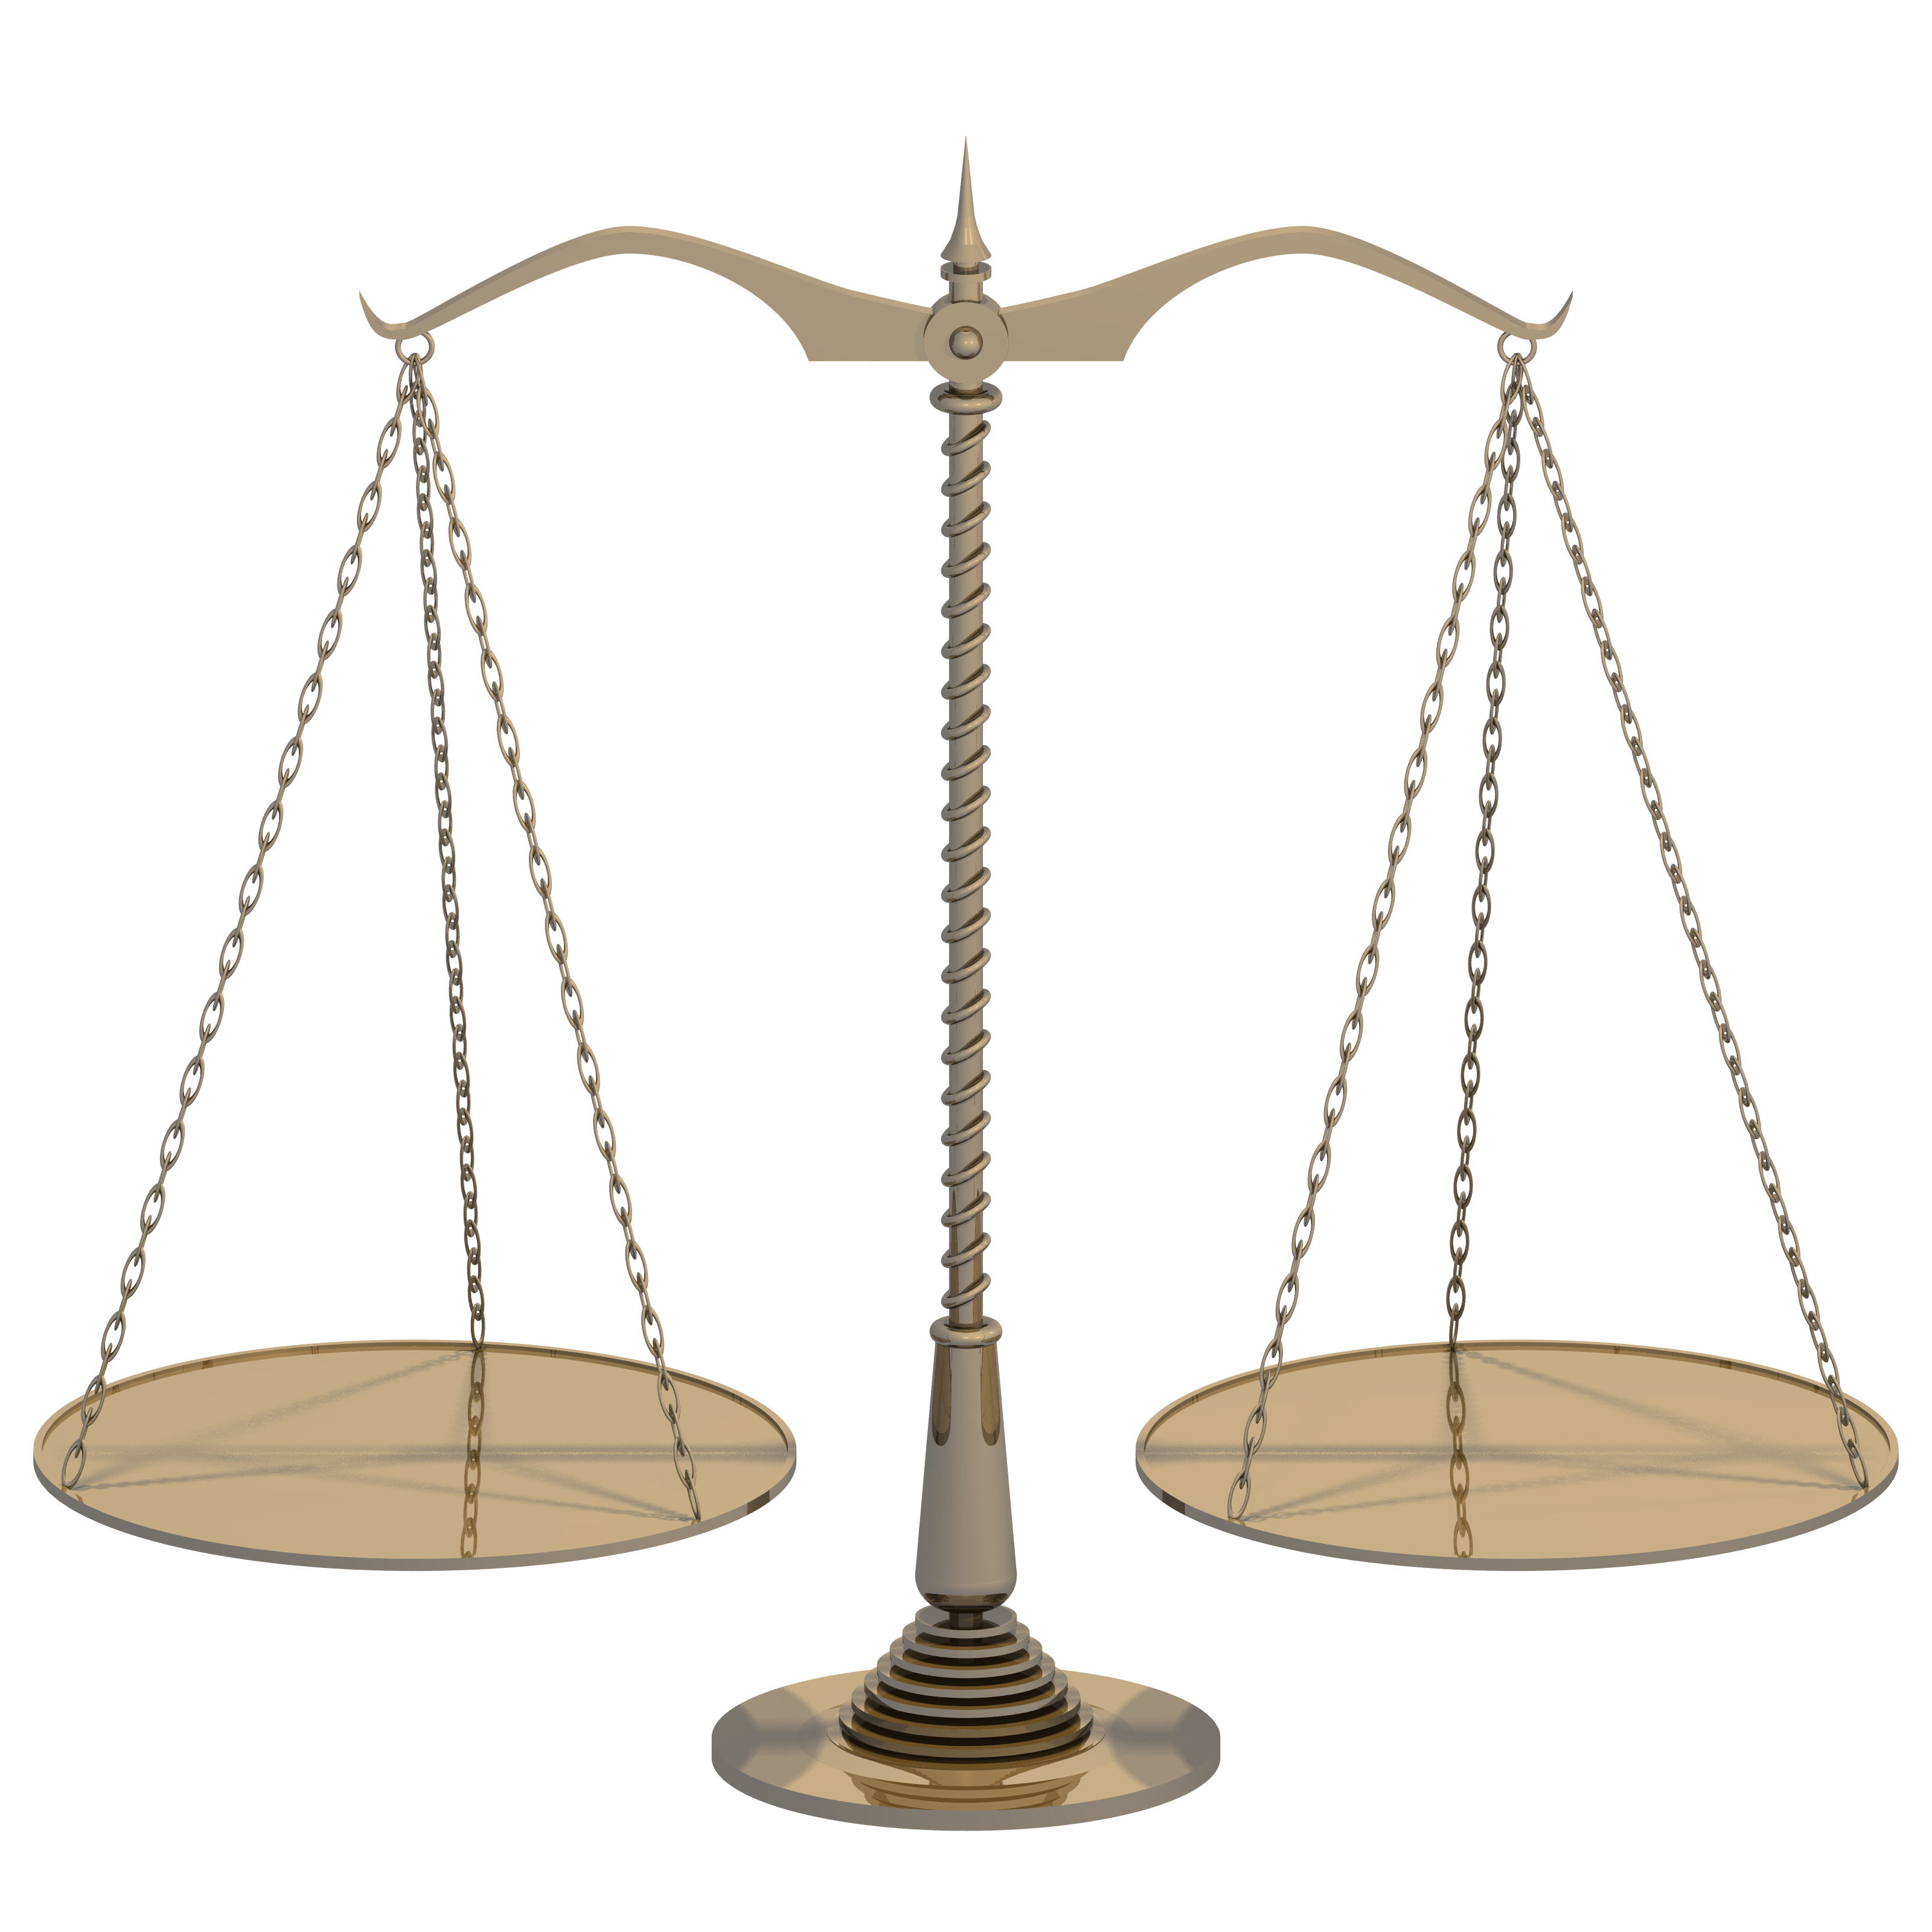 Brass scales with flat trays balanced.png